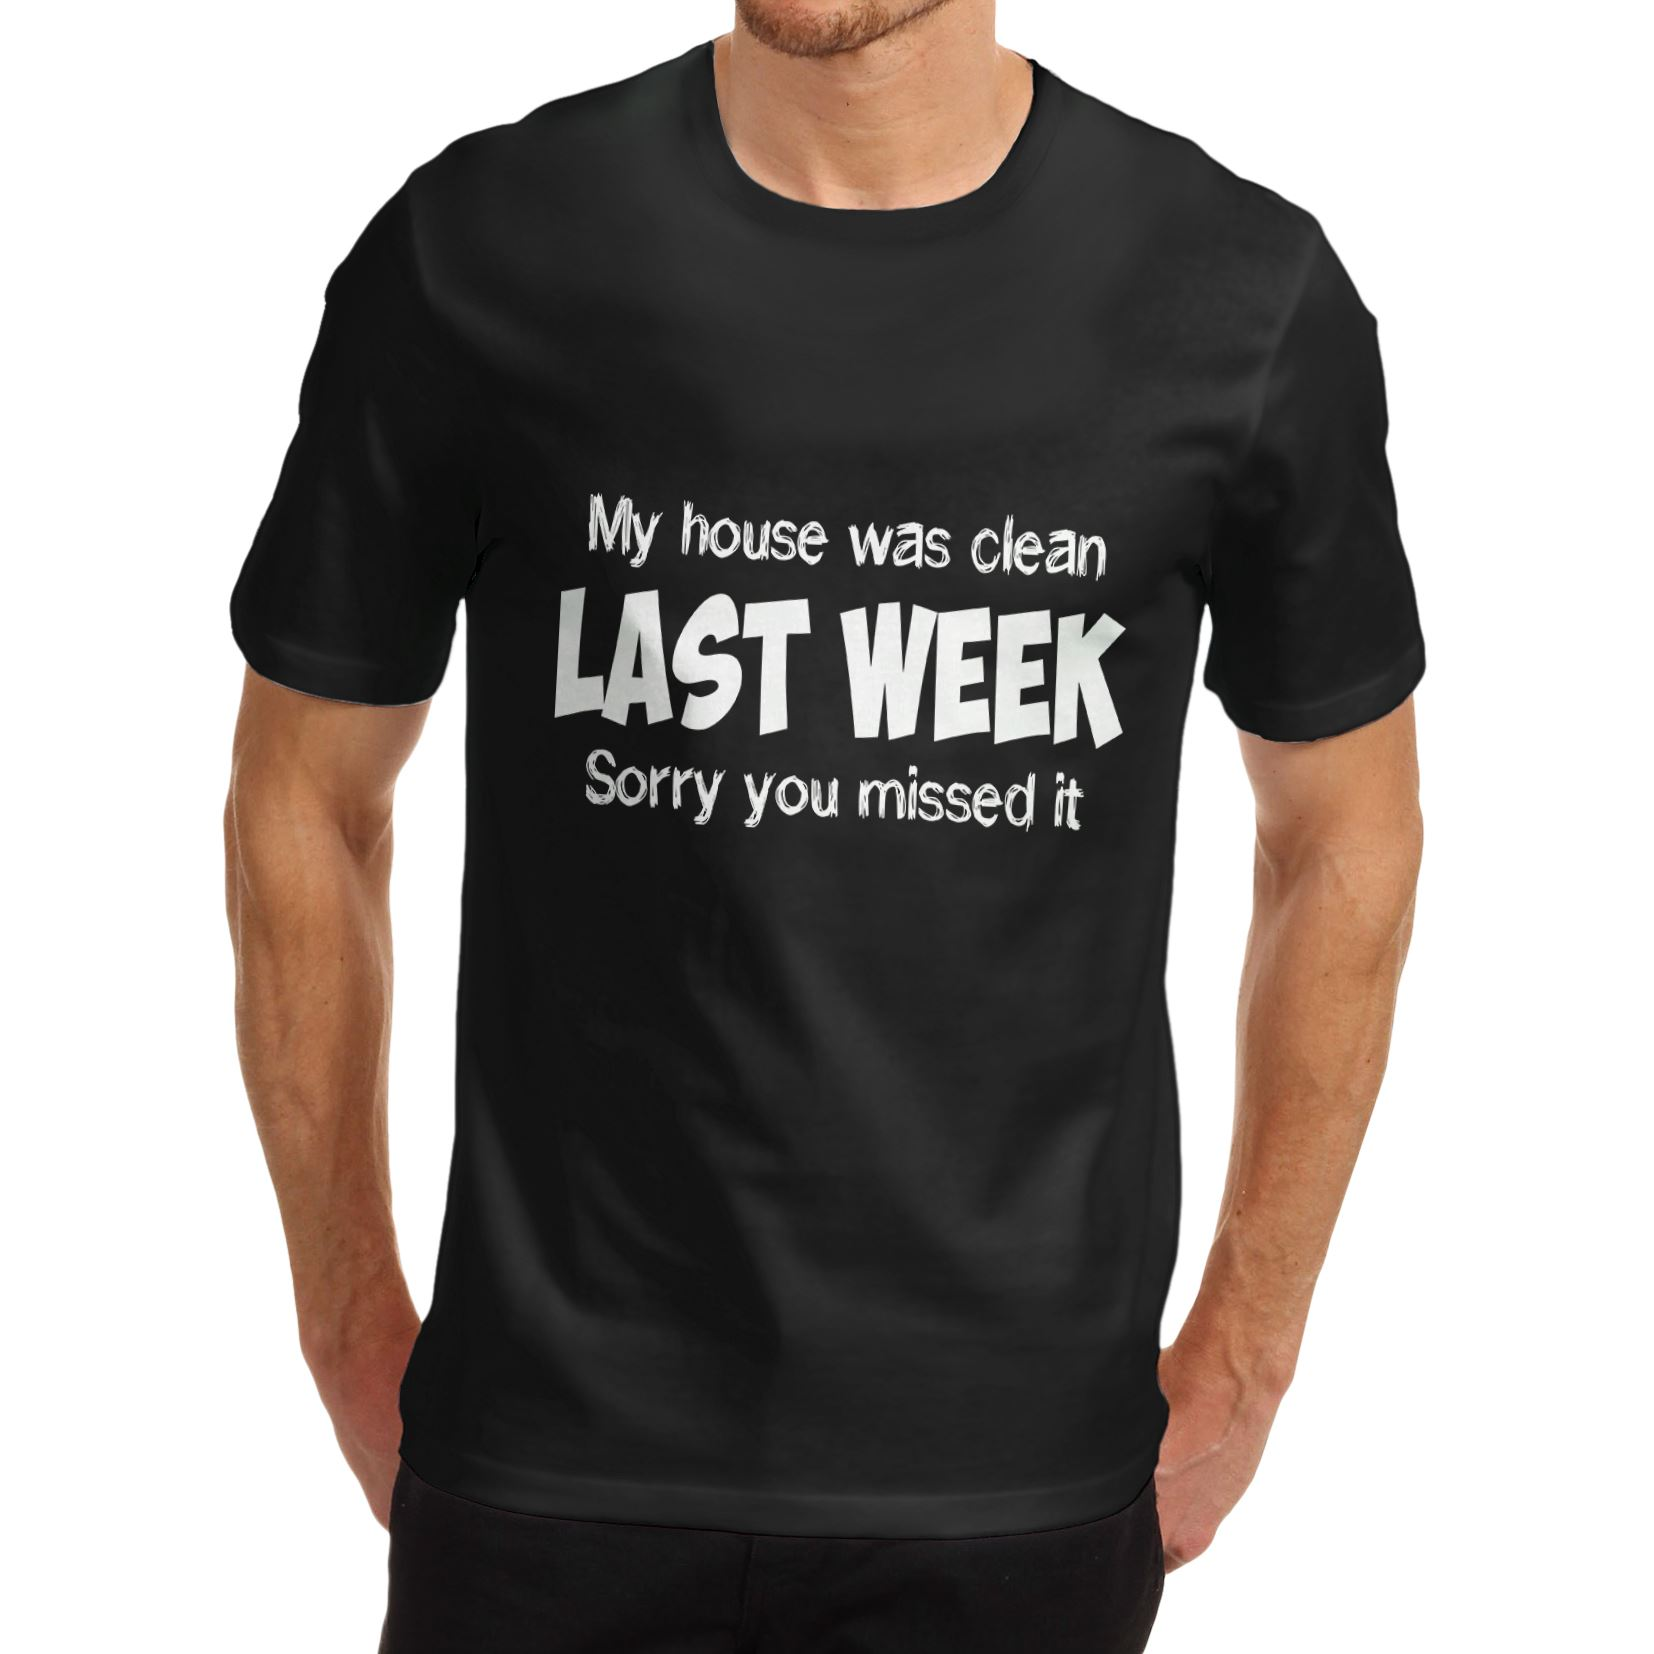 ea5d50eb4 Details about Men's My House Was Clean Last Week Sorry You Missed It Funny T -Shirt